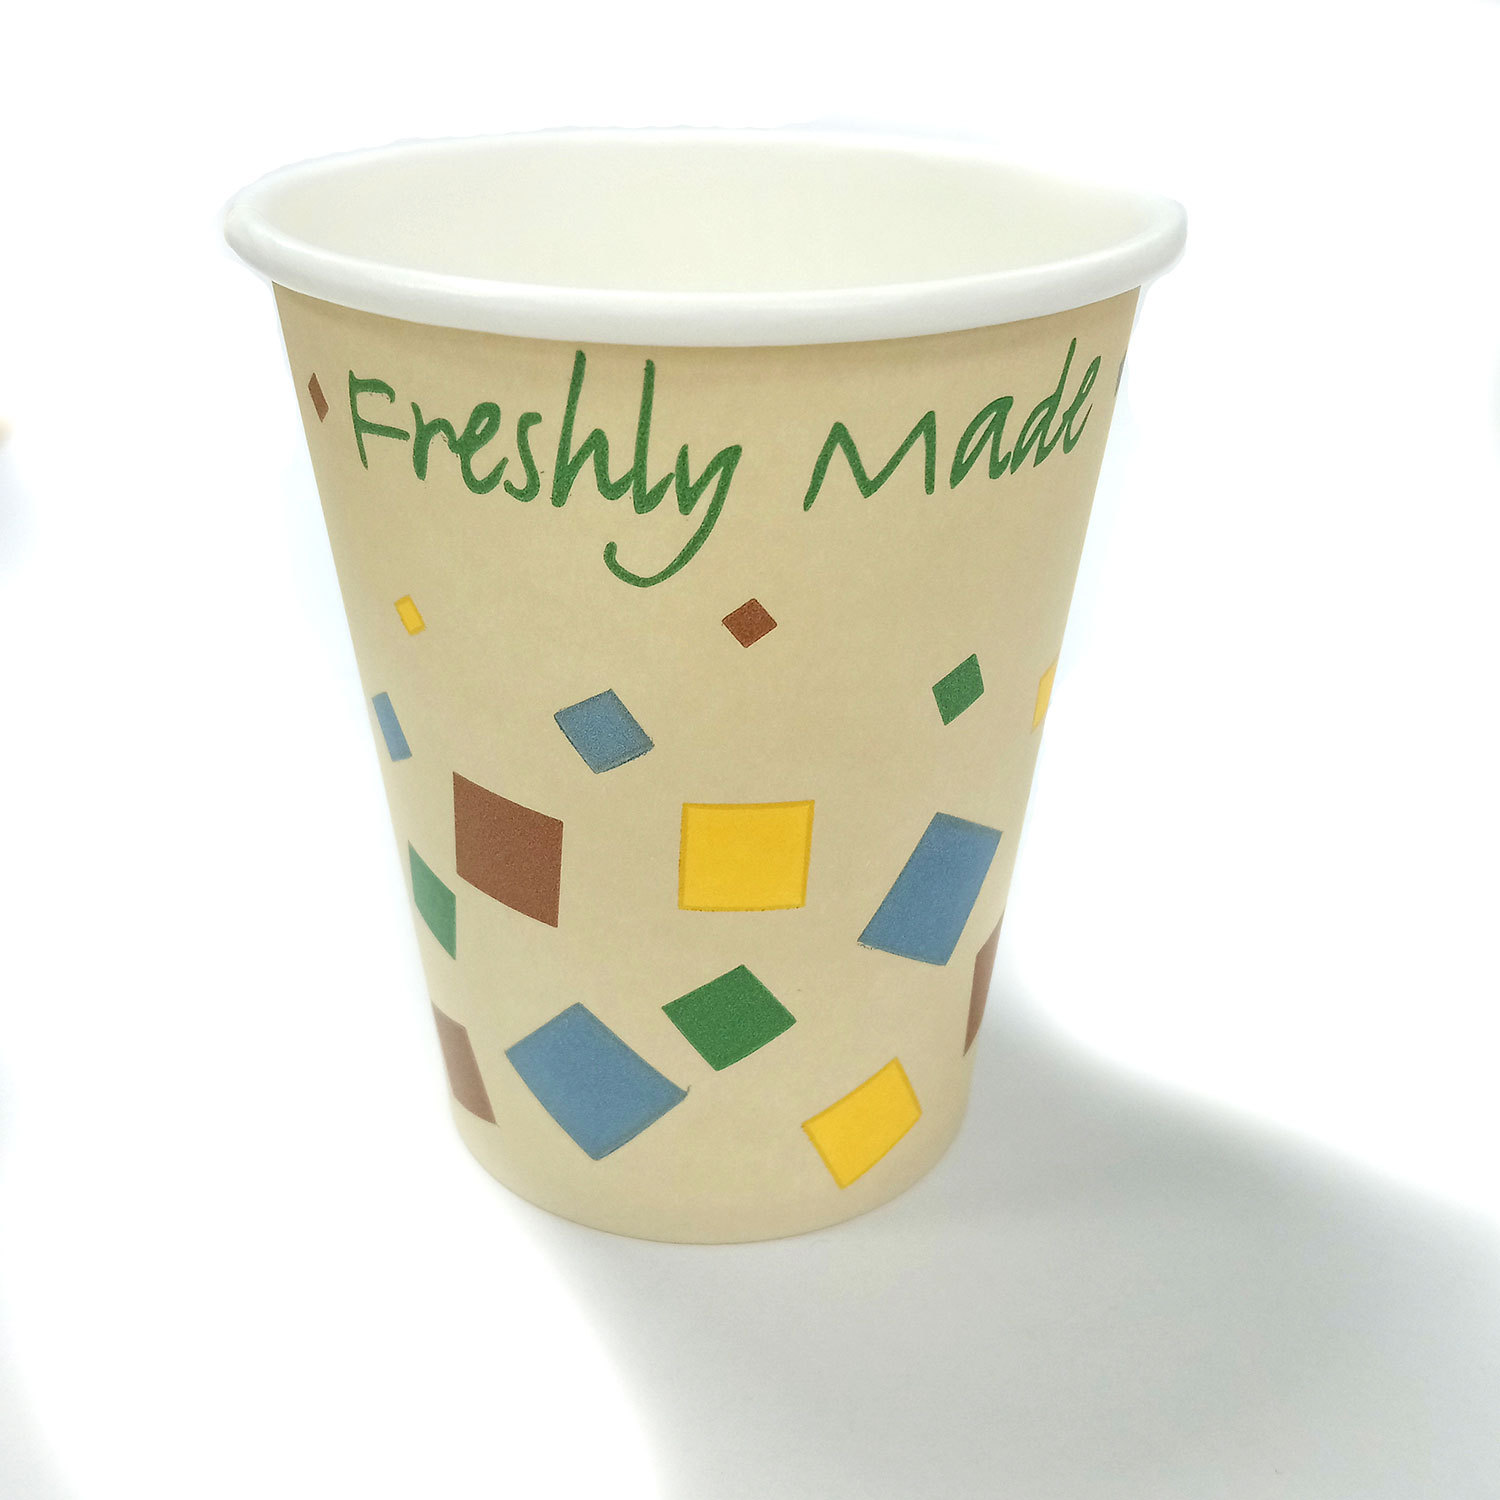 Freshly Made' 8oz Disposable Coffee Cups - and 21 similar items